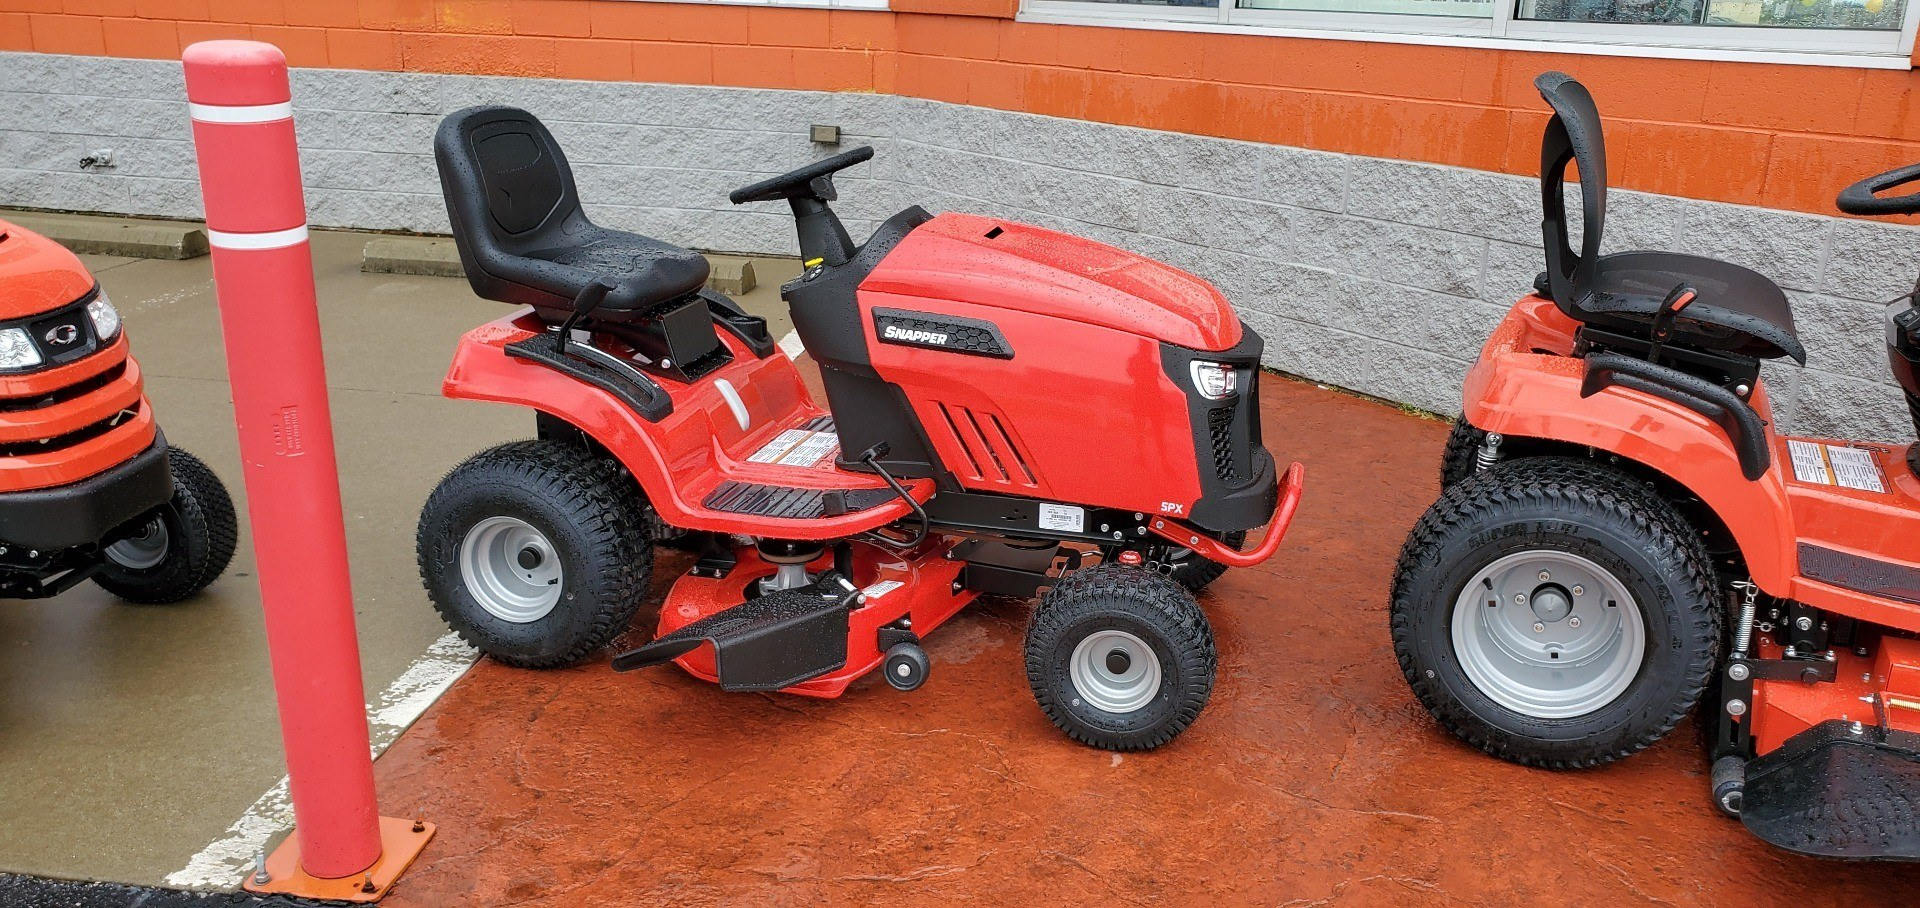 2019 Snapper SPX Series 23/42 Zero Turn Mower in Evansville, Indiana - Photo 1